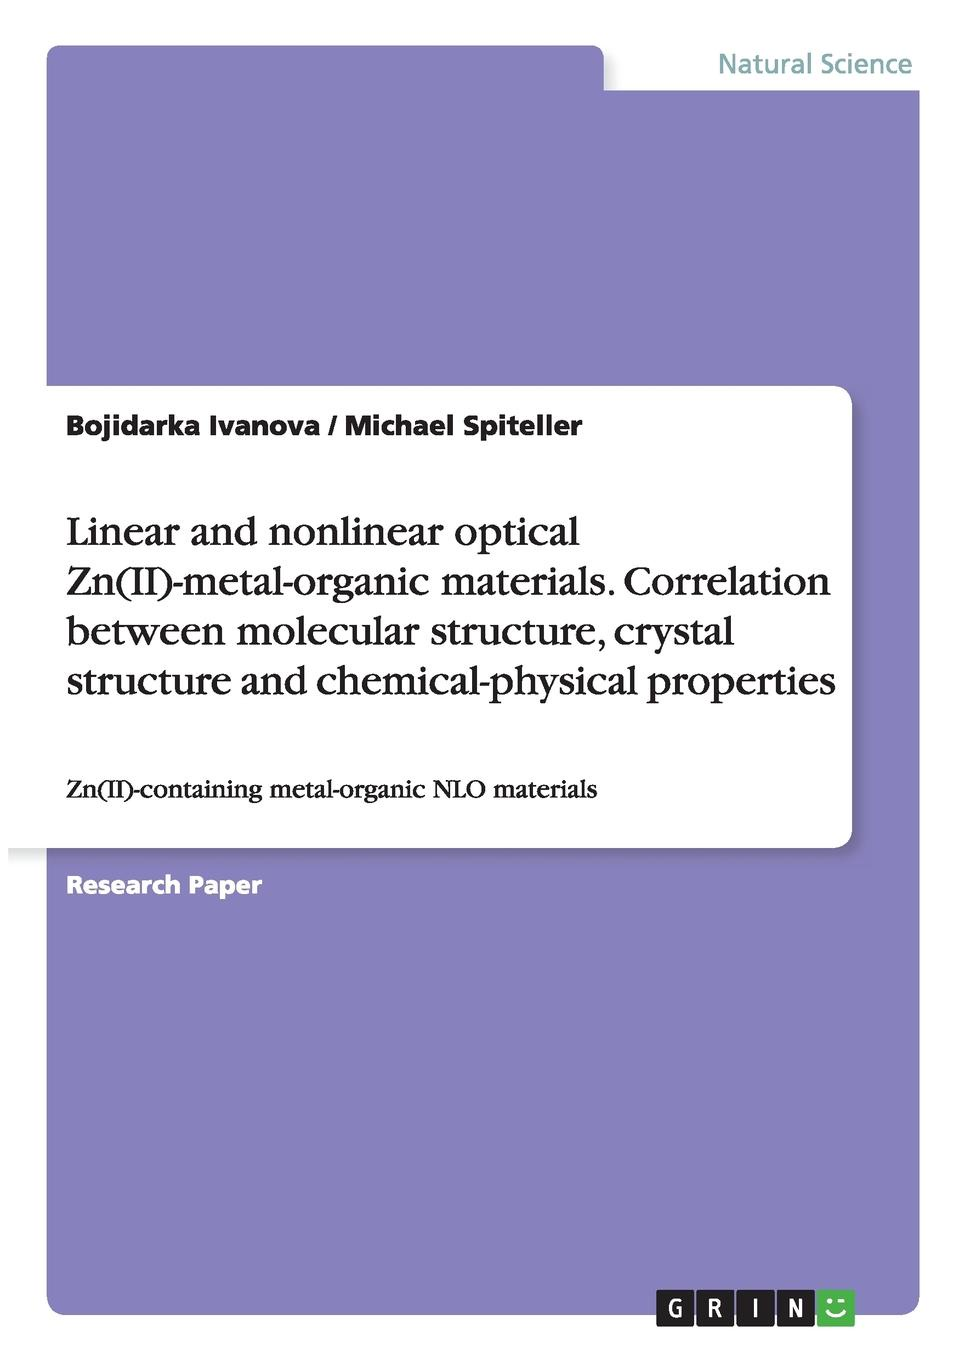 Bojidarka Ivanova, Michael Spiteller Linear and nonlinear optical Zn(II)-metal-organic materials. Correlation between molecular structure, crystal structure and chemical-physical properties isaac bersuker b electronic structure and properties of transition metal compounds introduction to the theory